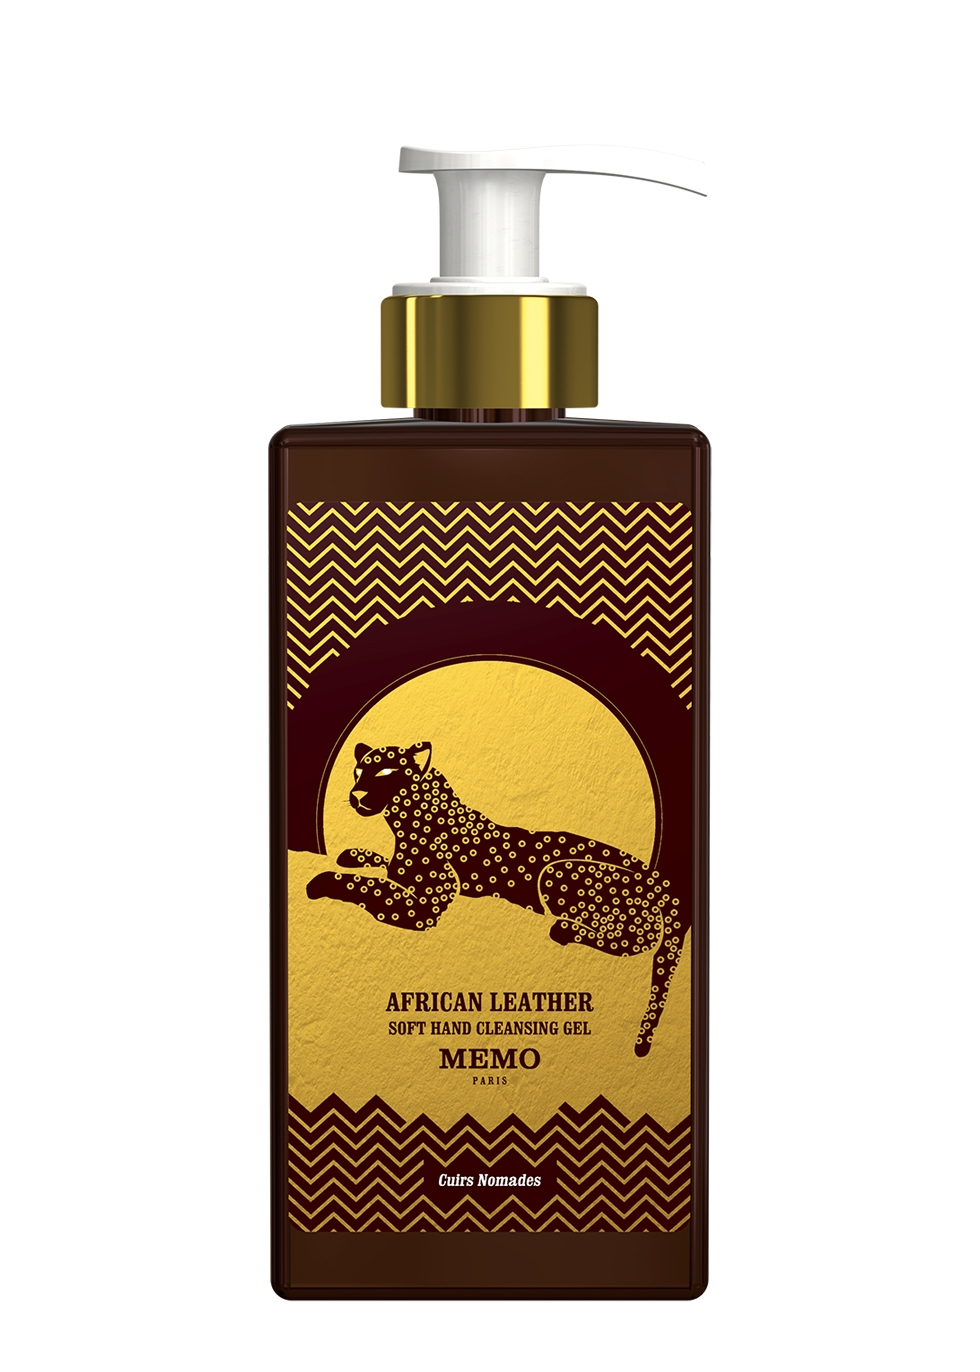 African Leather Soft Hand Cleansing Gel 250ml